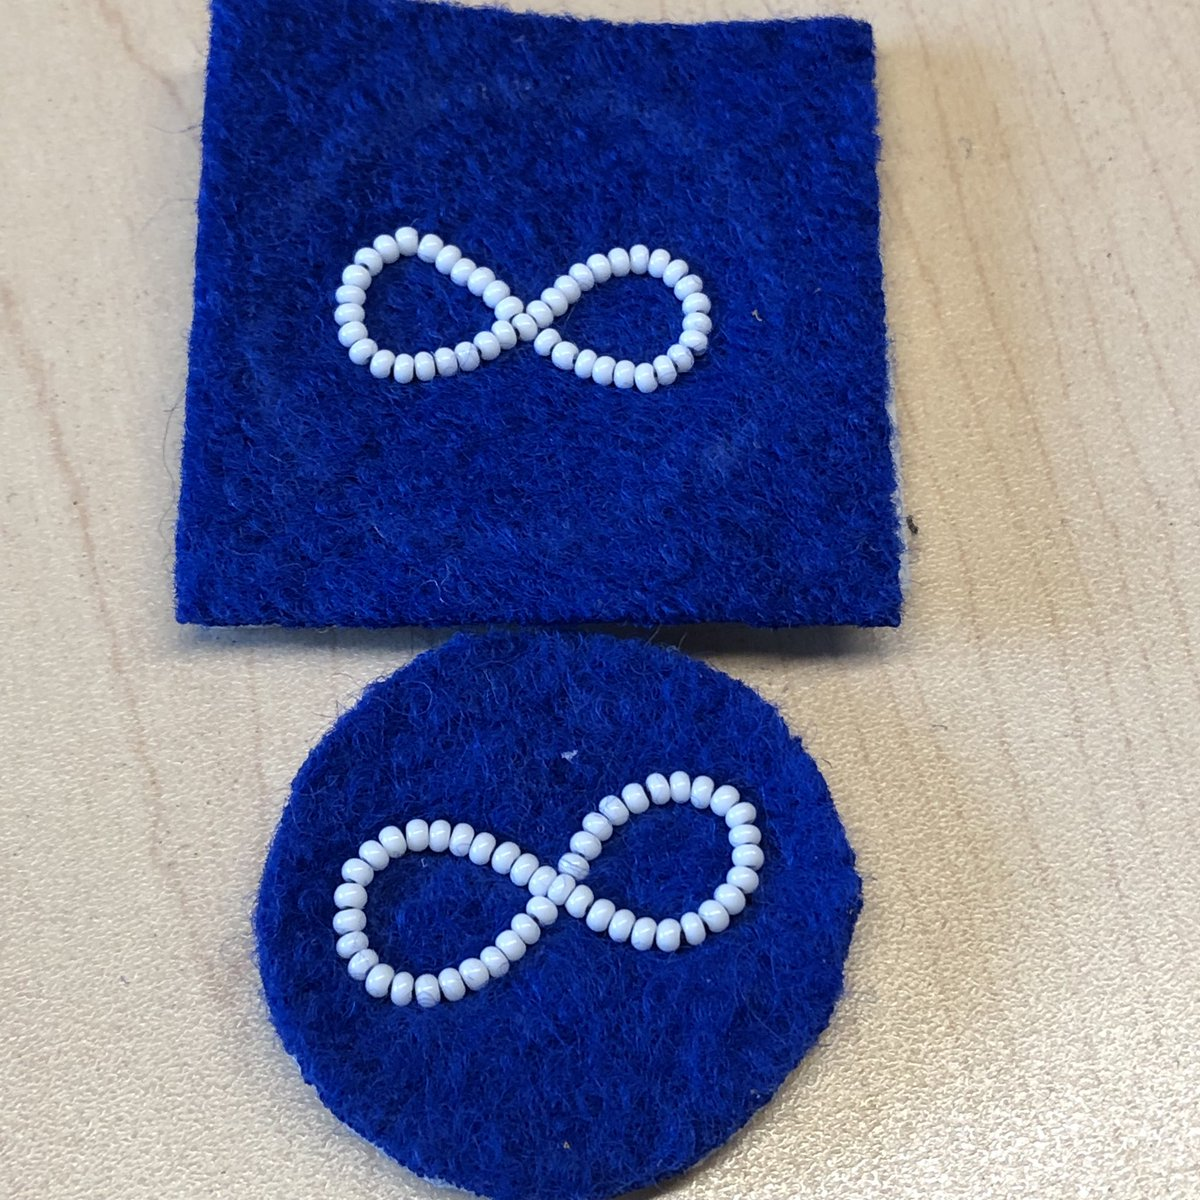 For tomorrow's conference, I'm teaching 2 needle beading & participants will be making a blue Métis flag pin. Here are 2 pieces for my demos. #beading #métis @beadedchickadee @AlbertaMetis @ABMetisYouth